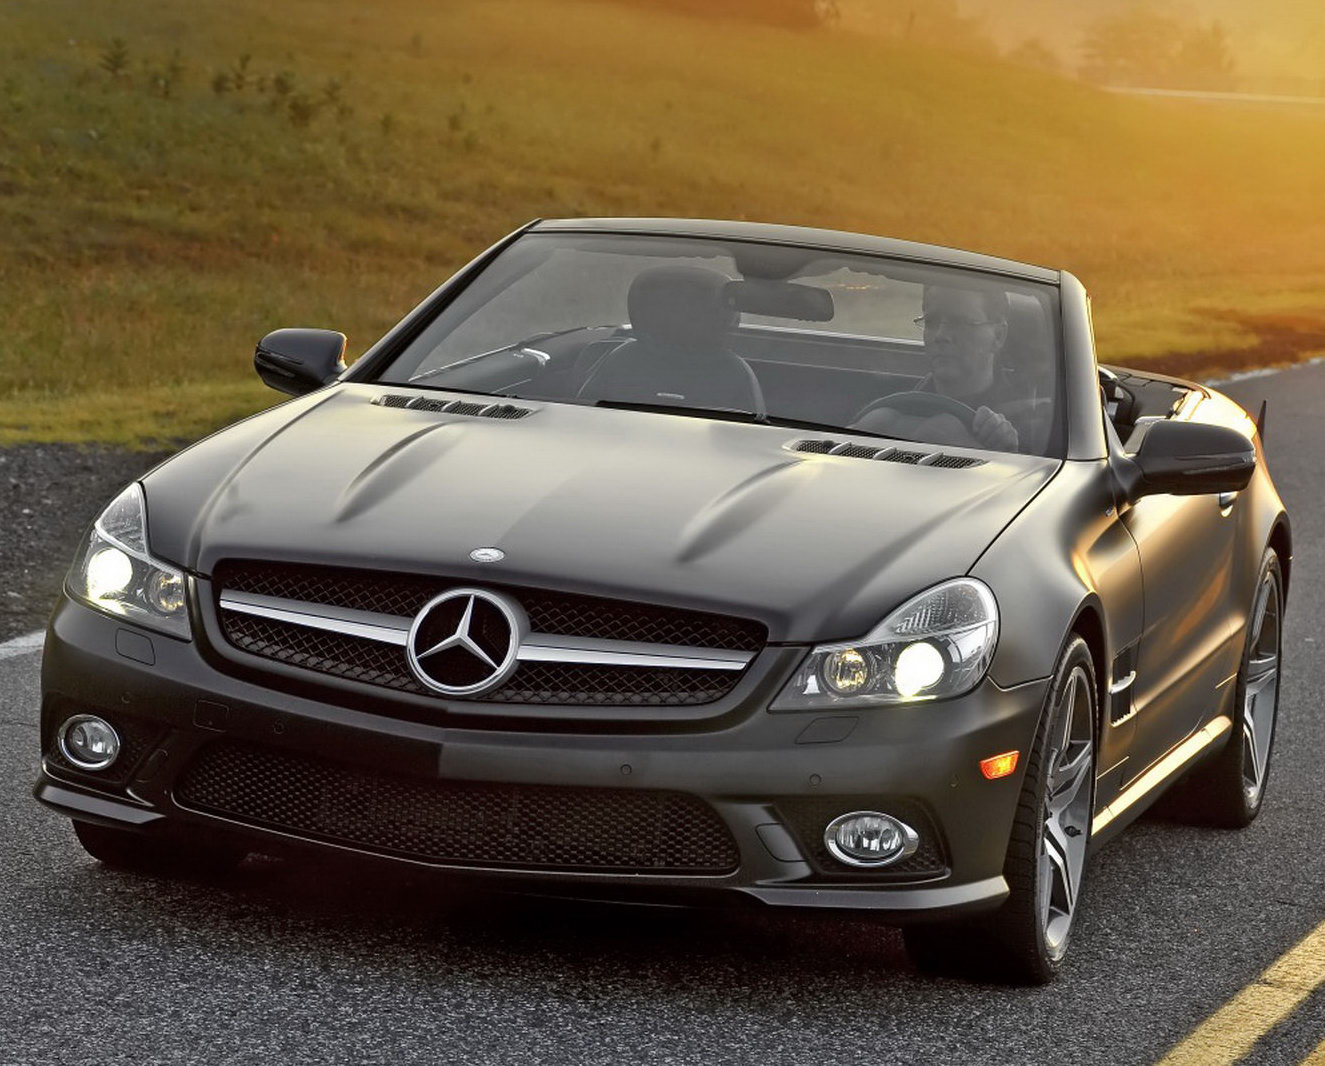 hight resolution of according to quality planning a division of verisk analytics inc american mercedes sl drivers are at least four times more likely to get ticketed than a